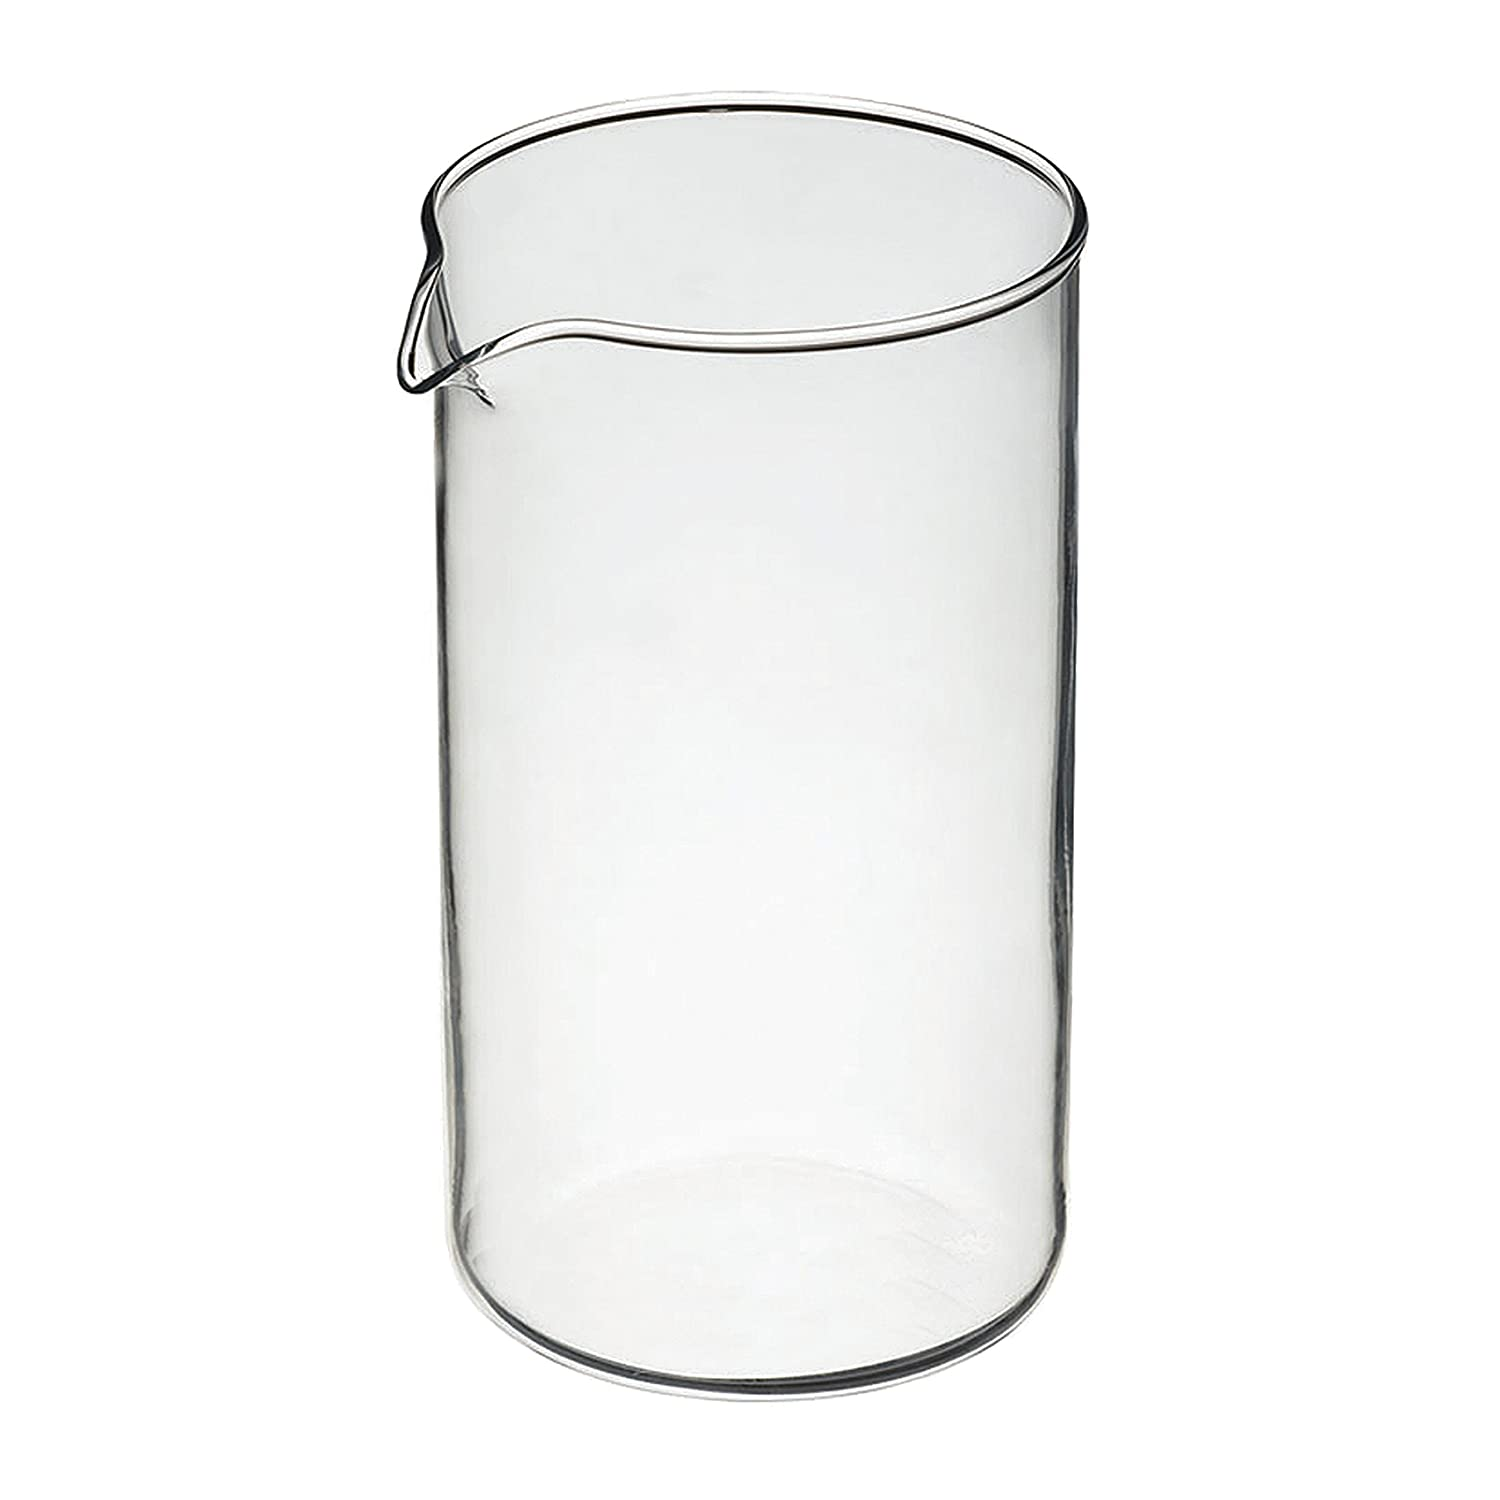 Grosche 1000ml 34 Fl. Oz (8 cup) French Press Universal Replacement Beaker (Fits GROSCHE and other leading 8 cup French presses as well) GROSCHE International Inc. GR 173